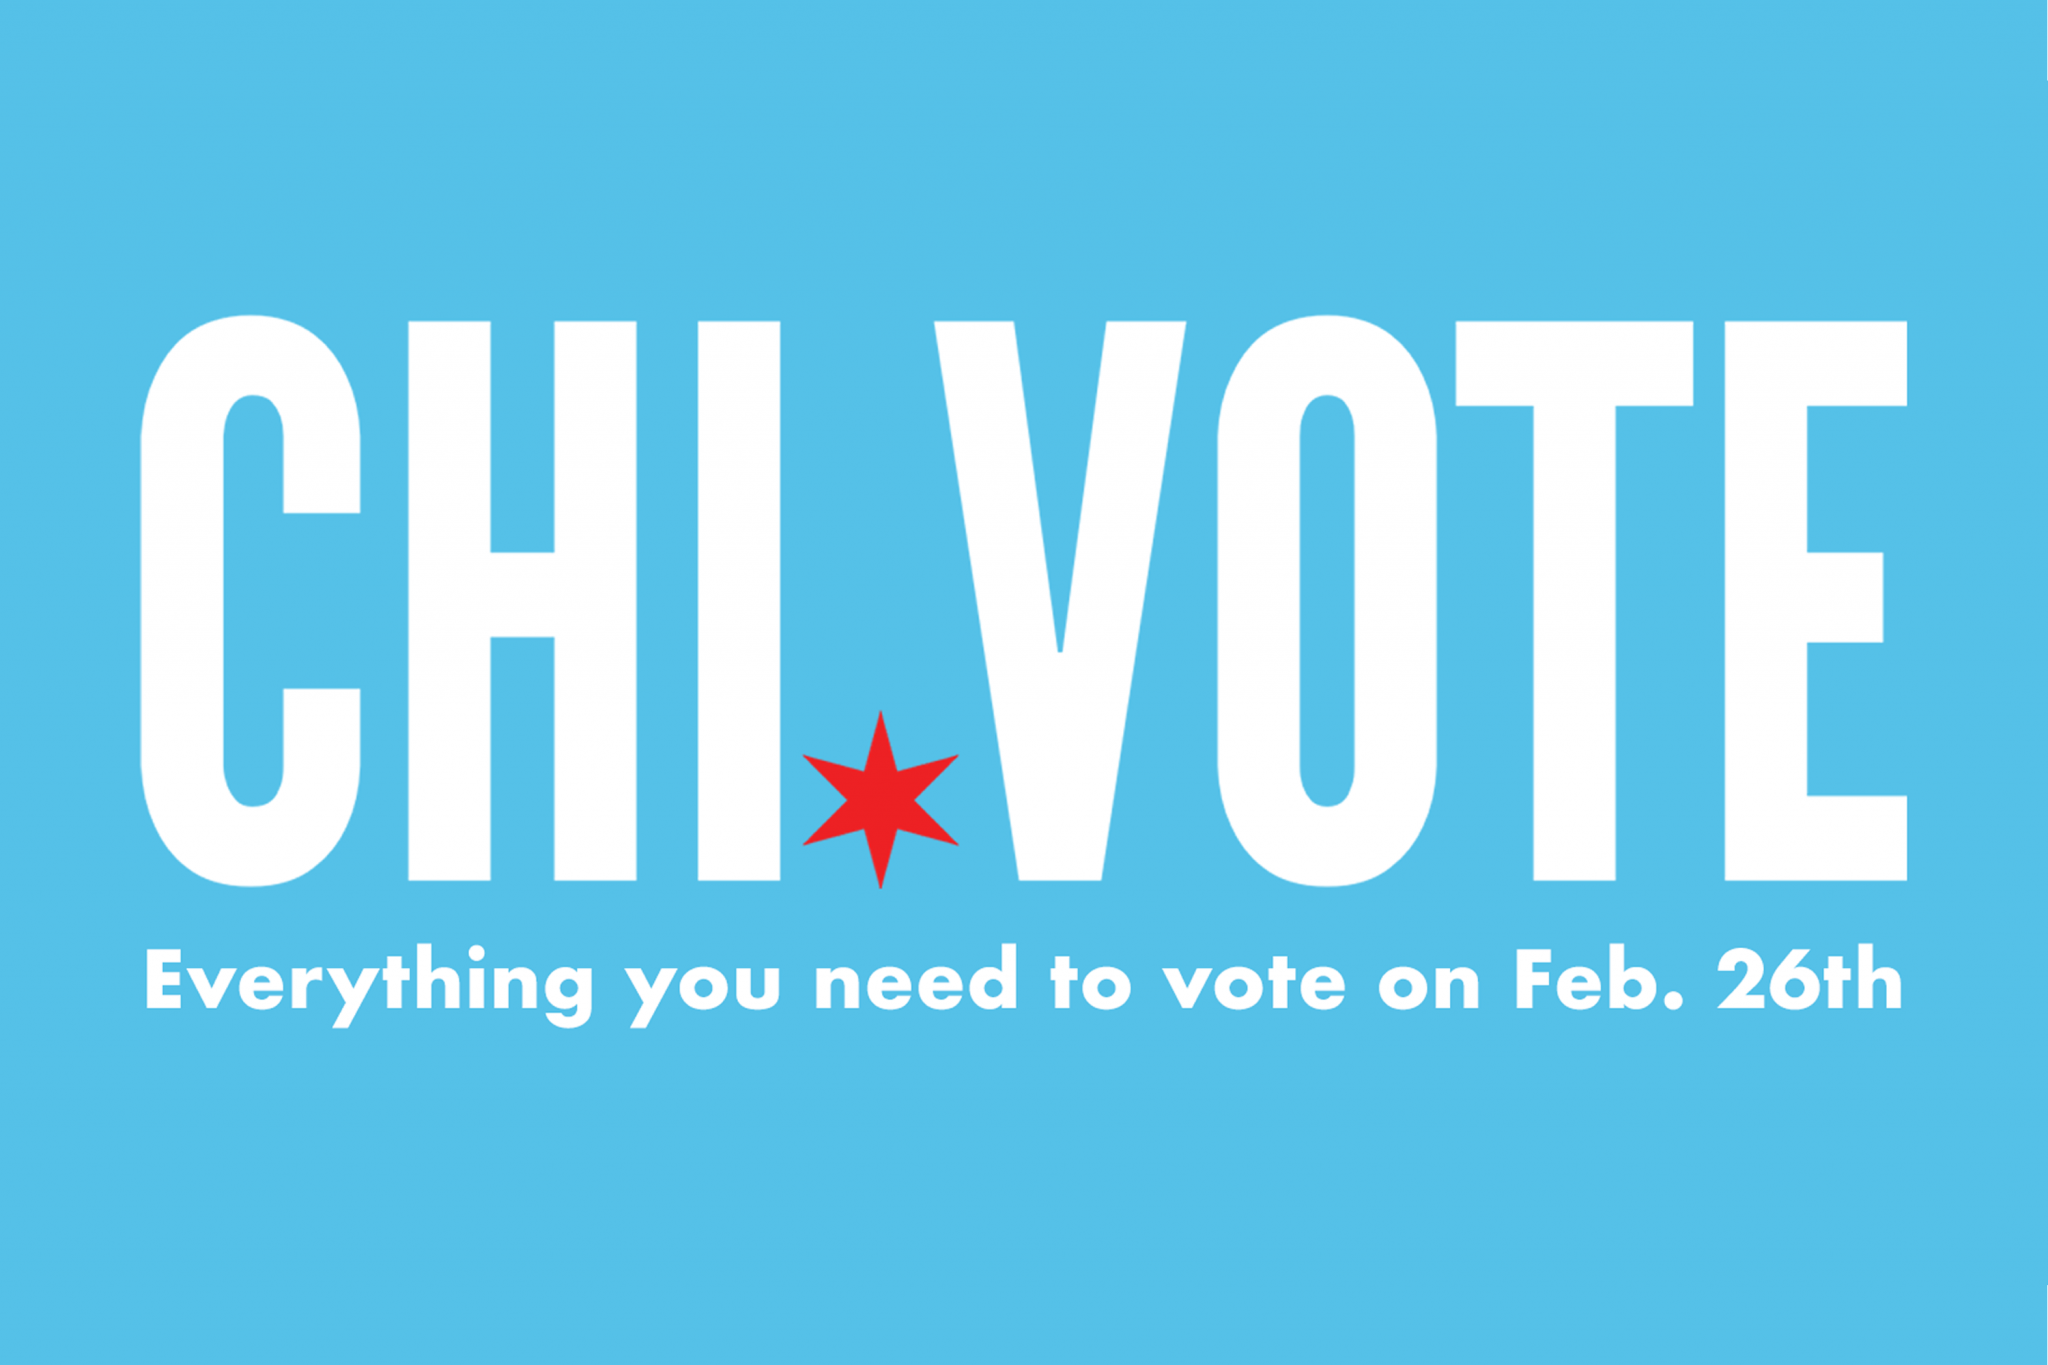 C_3x2_Chi-vote_advert.png